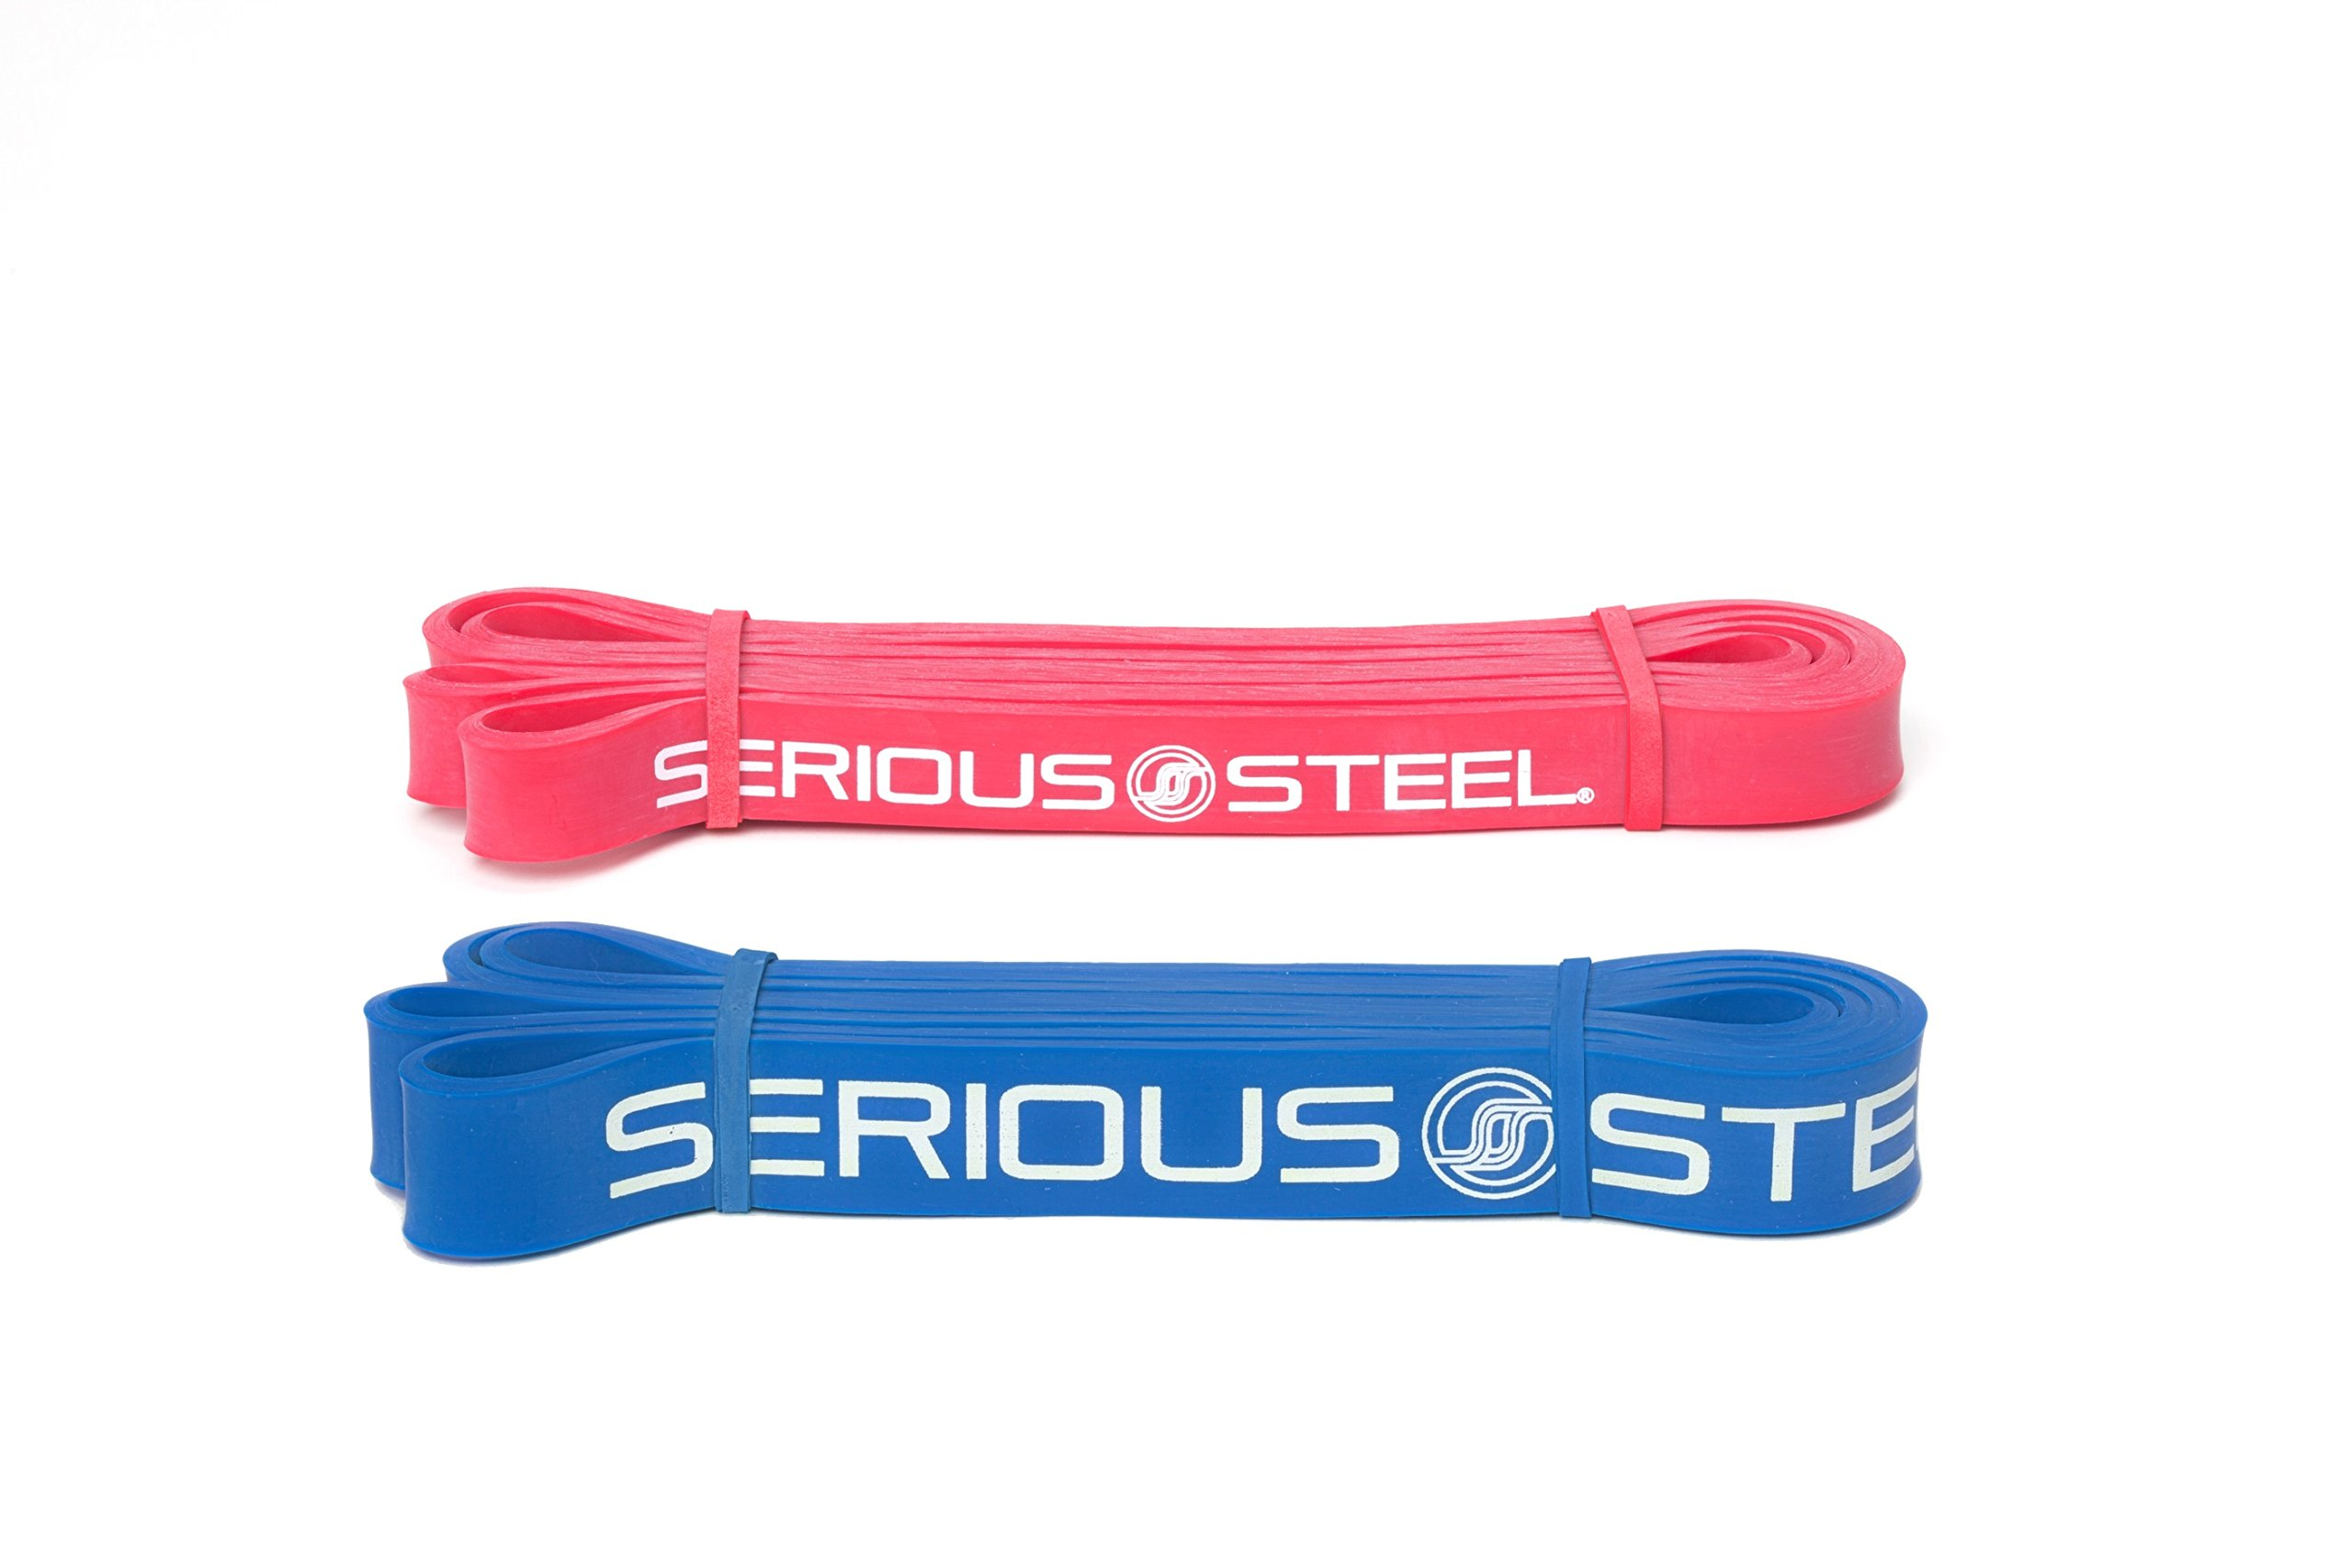 Serious Steel Fitness Beginner Assisted Pull-up &Crossfit Resistance Band Package#2, 3 Band Set (10-80 lbs) Free Pull-up and Band Starter e-Guide